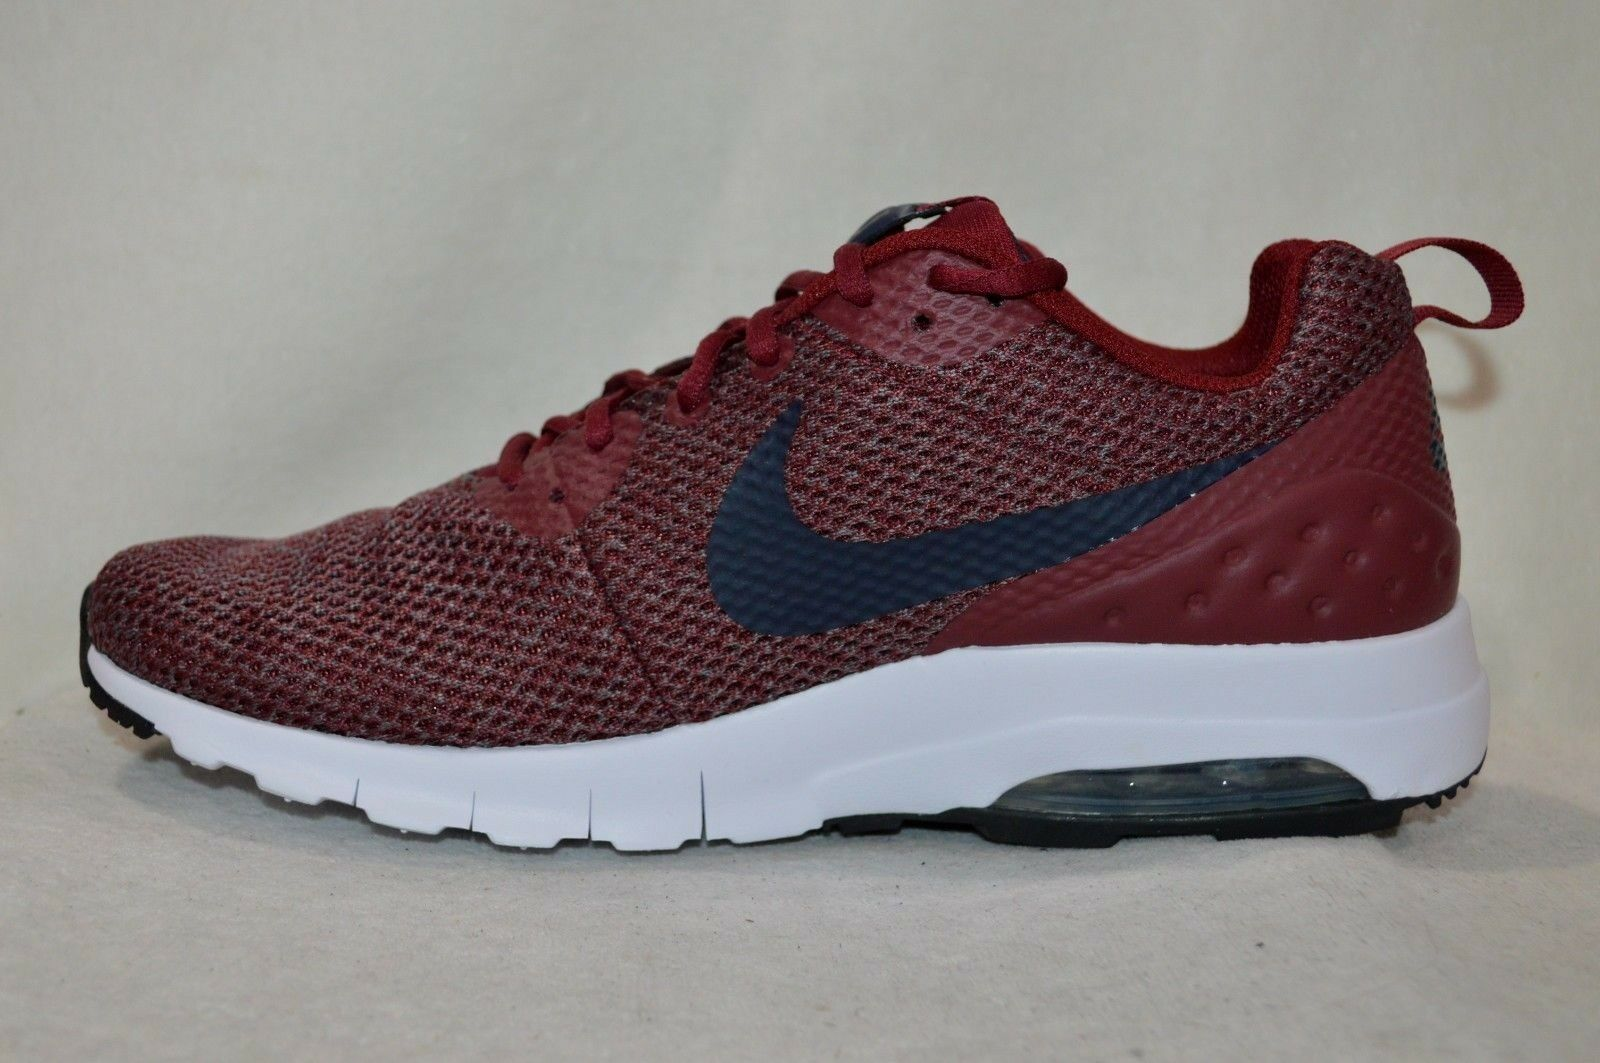 Nike Nike Nike Air Max Motion LW SE rouge/Obsidian/Navy/B homme fonctionnement chaussures-Asst 920c7f